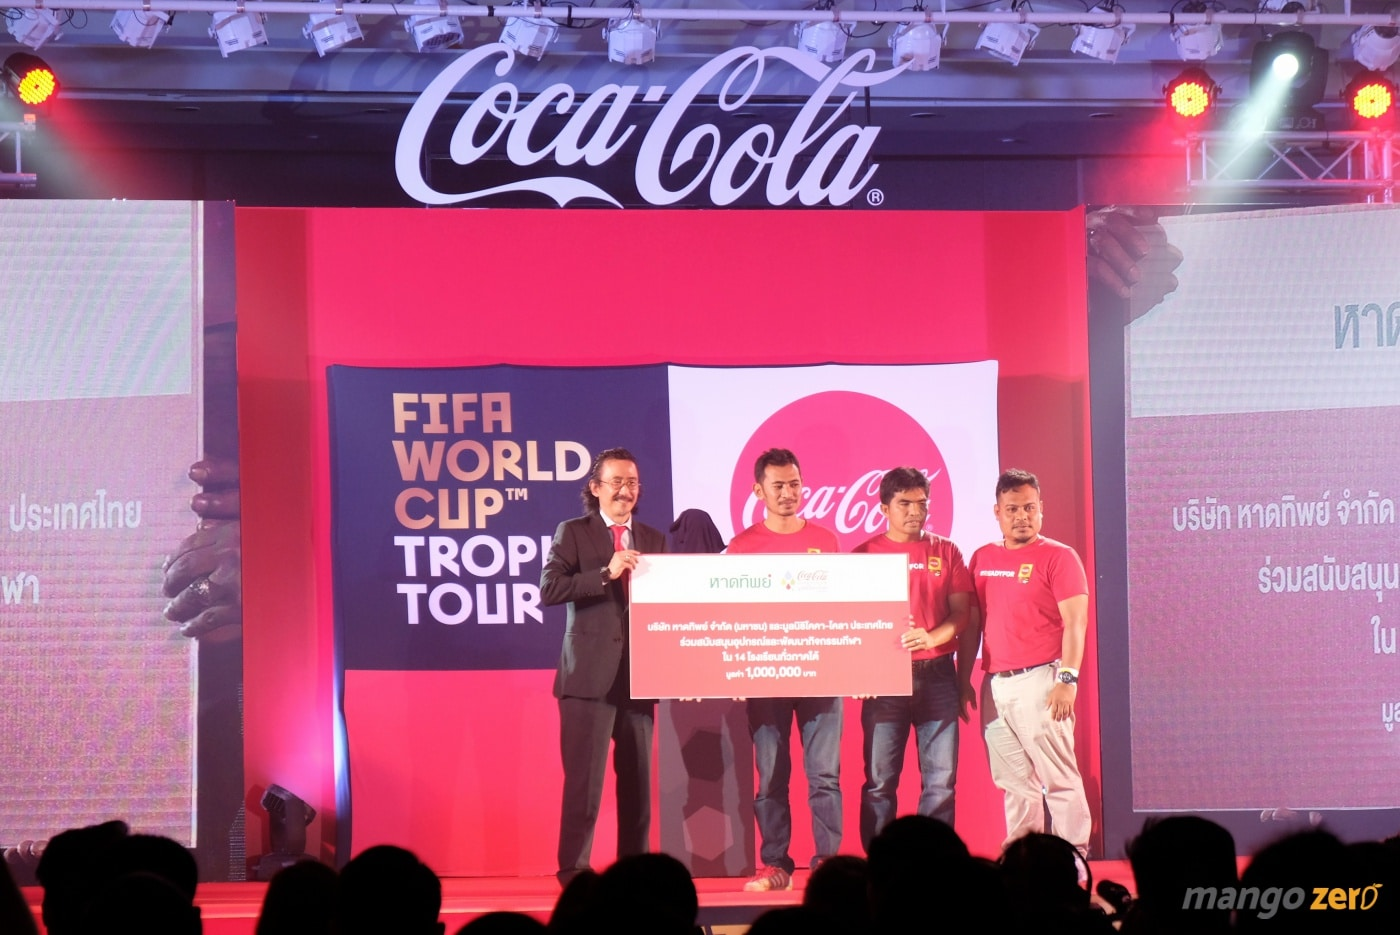 2018-fifa-world-cup-trophy-tour-by-coca-cola-at-phuket-13